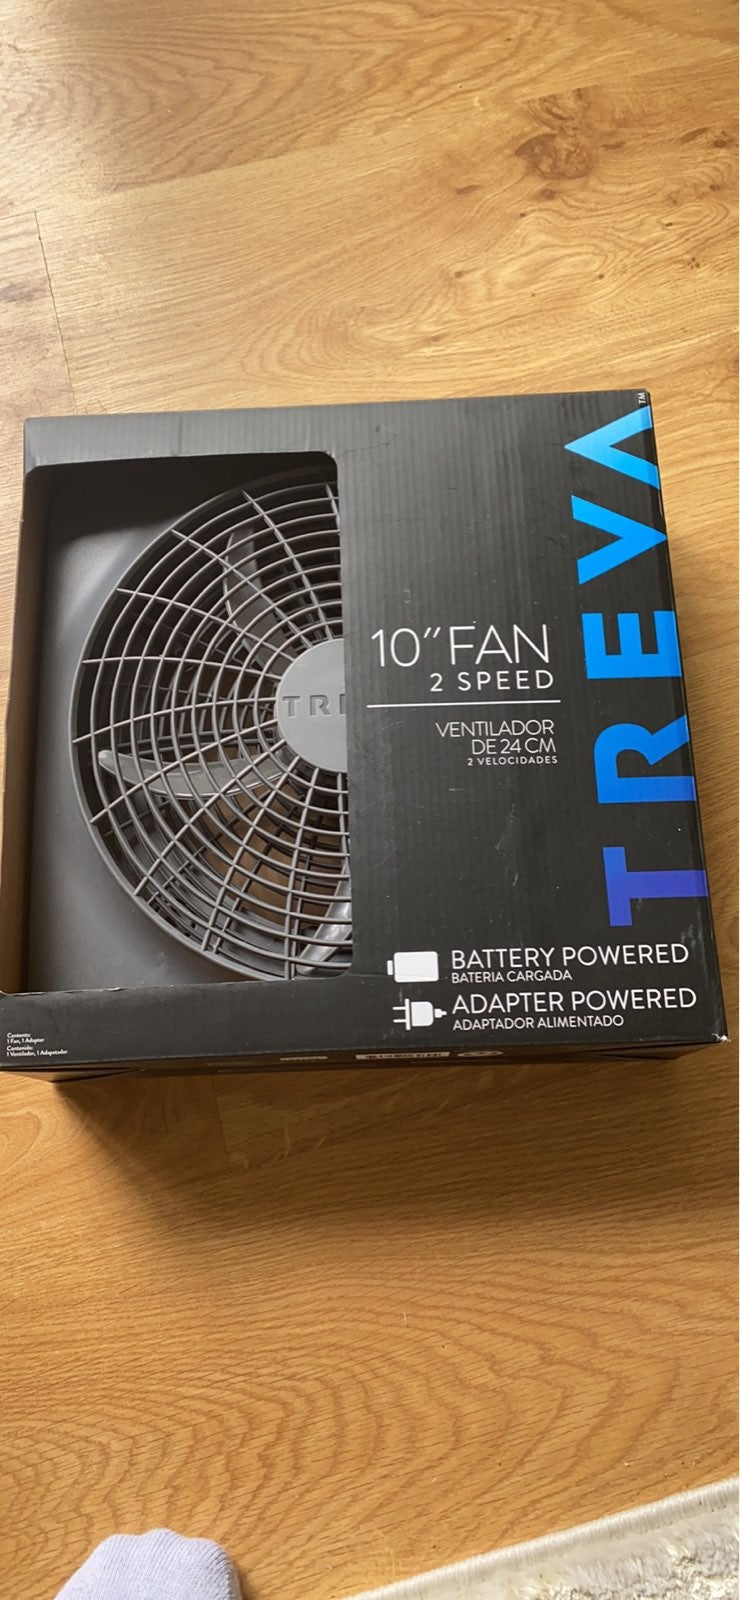 2 speed quiet fan battery operated or pl